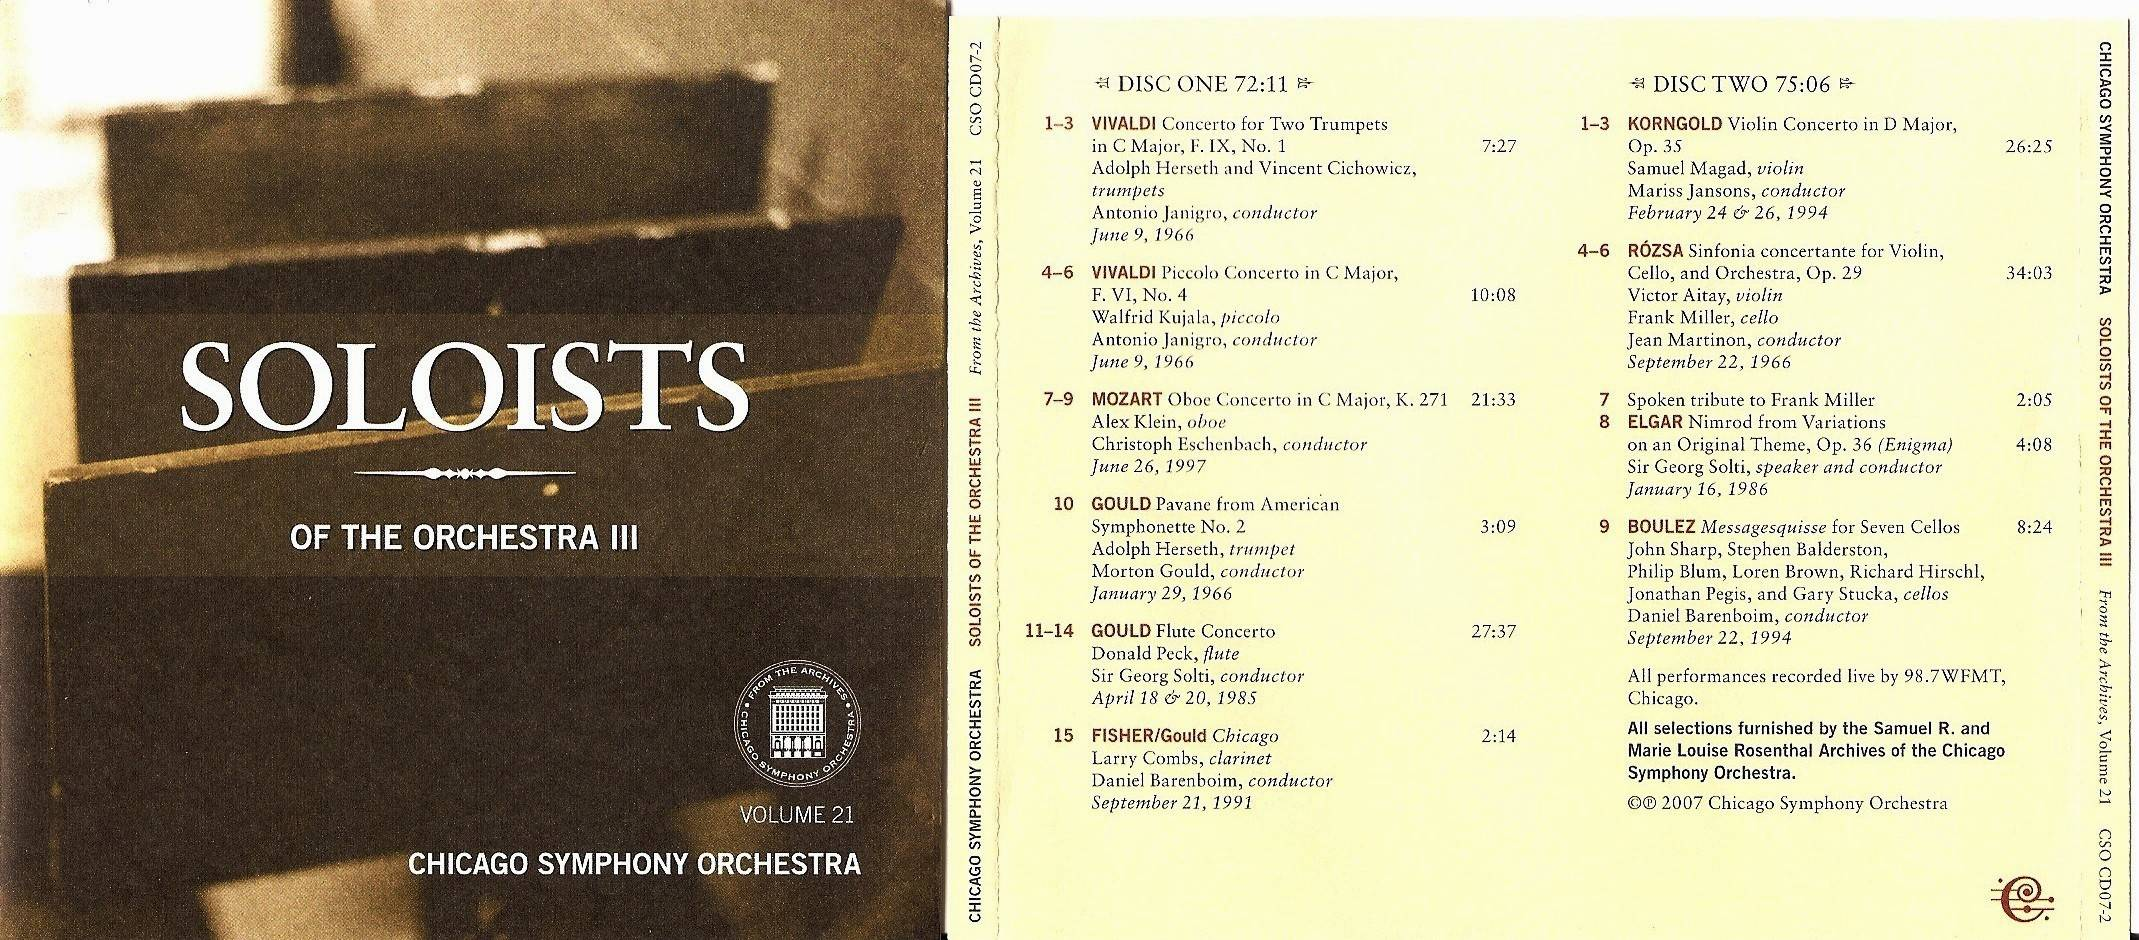 Chicago Symphony Orchestra - From the Archives, Vol.21: Soloists of the Orchestra III, 2-CD set (2007)